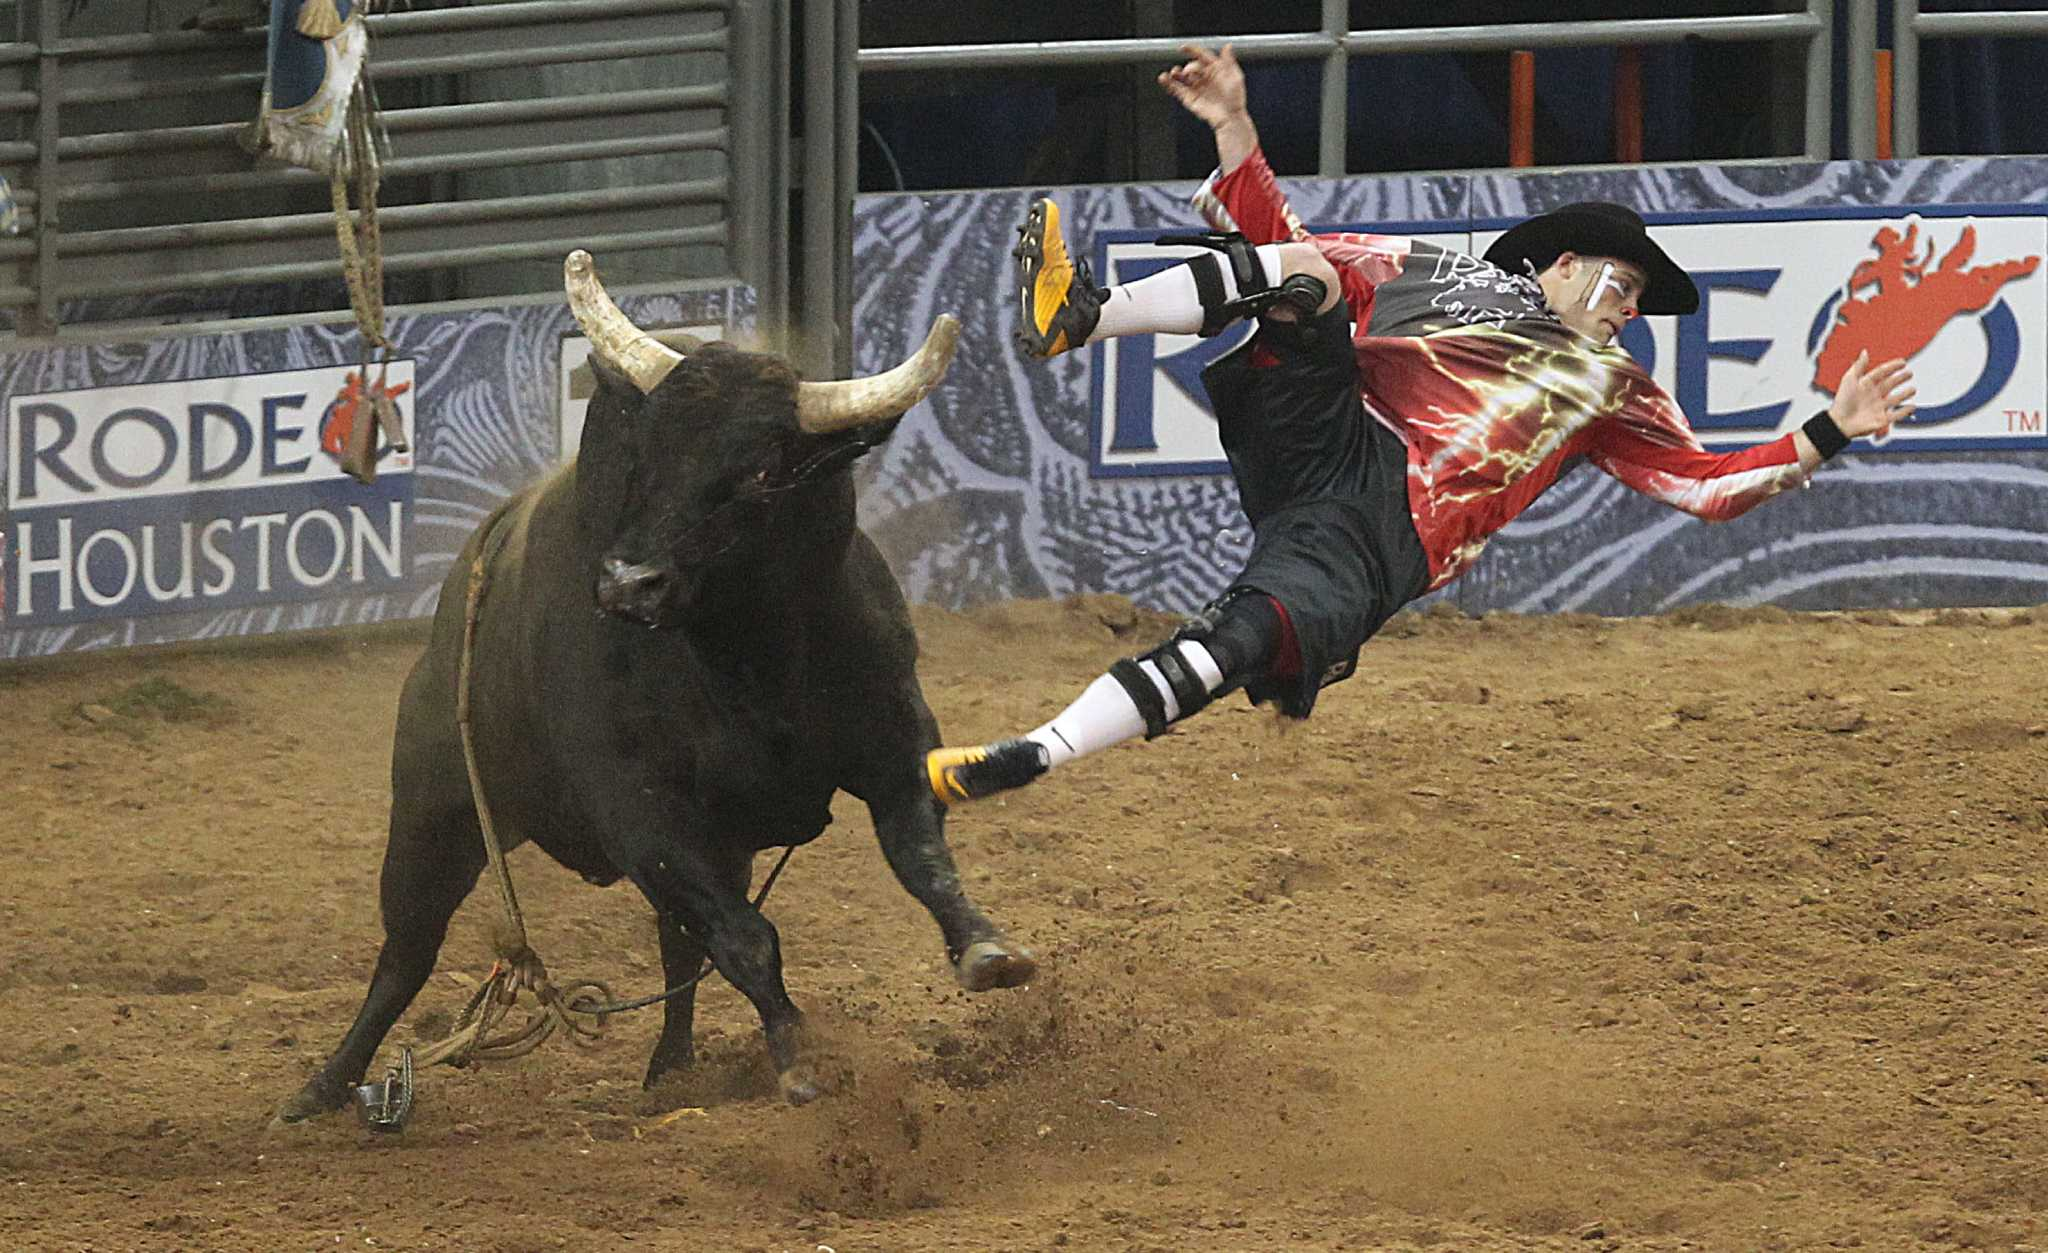 Bullfighting No Laughing Matter For Rodeo Clowns